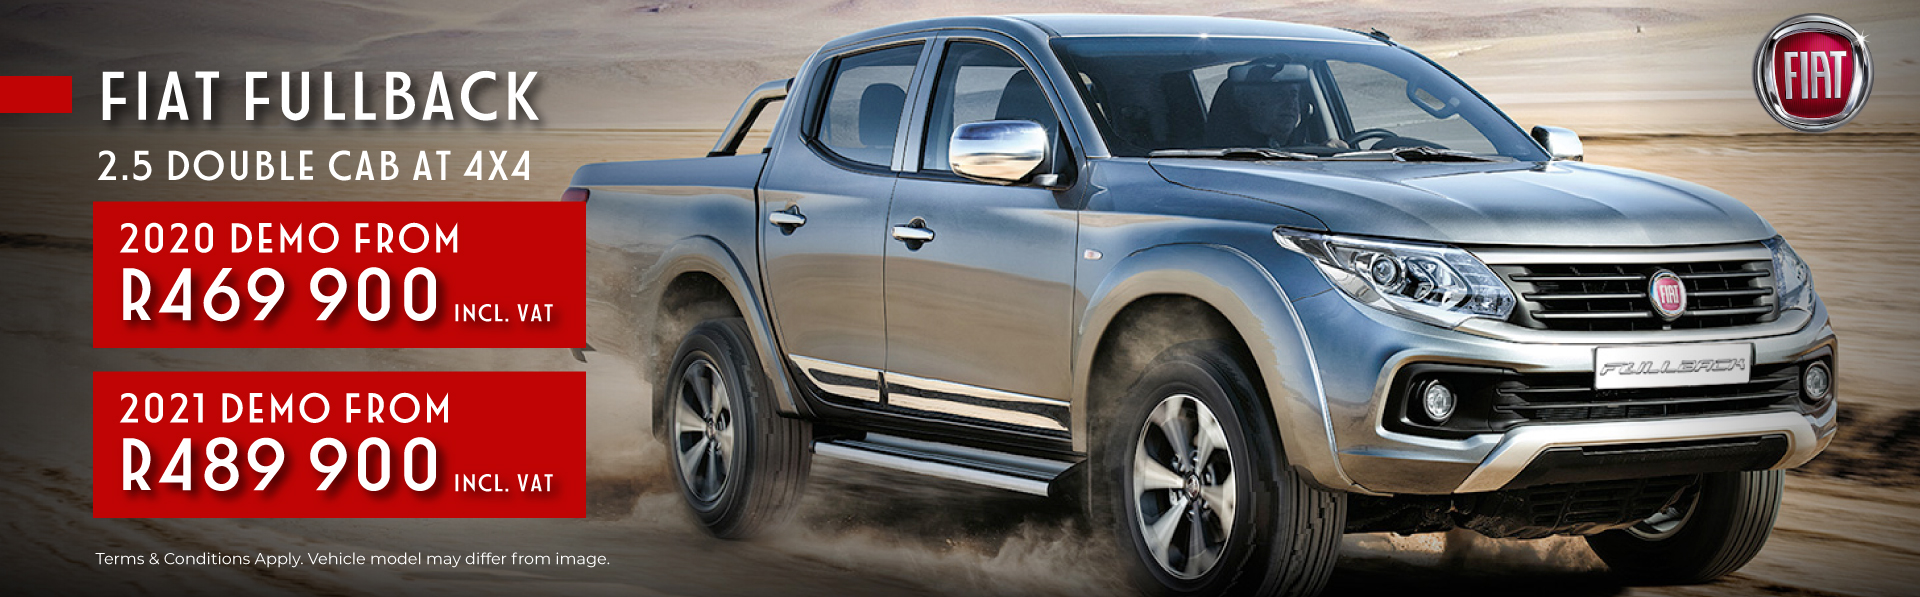 demo-fiat-fullback-double-cab